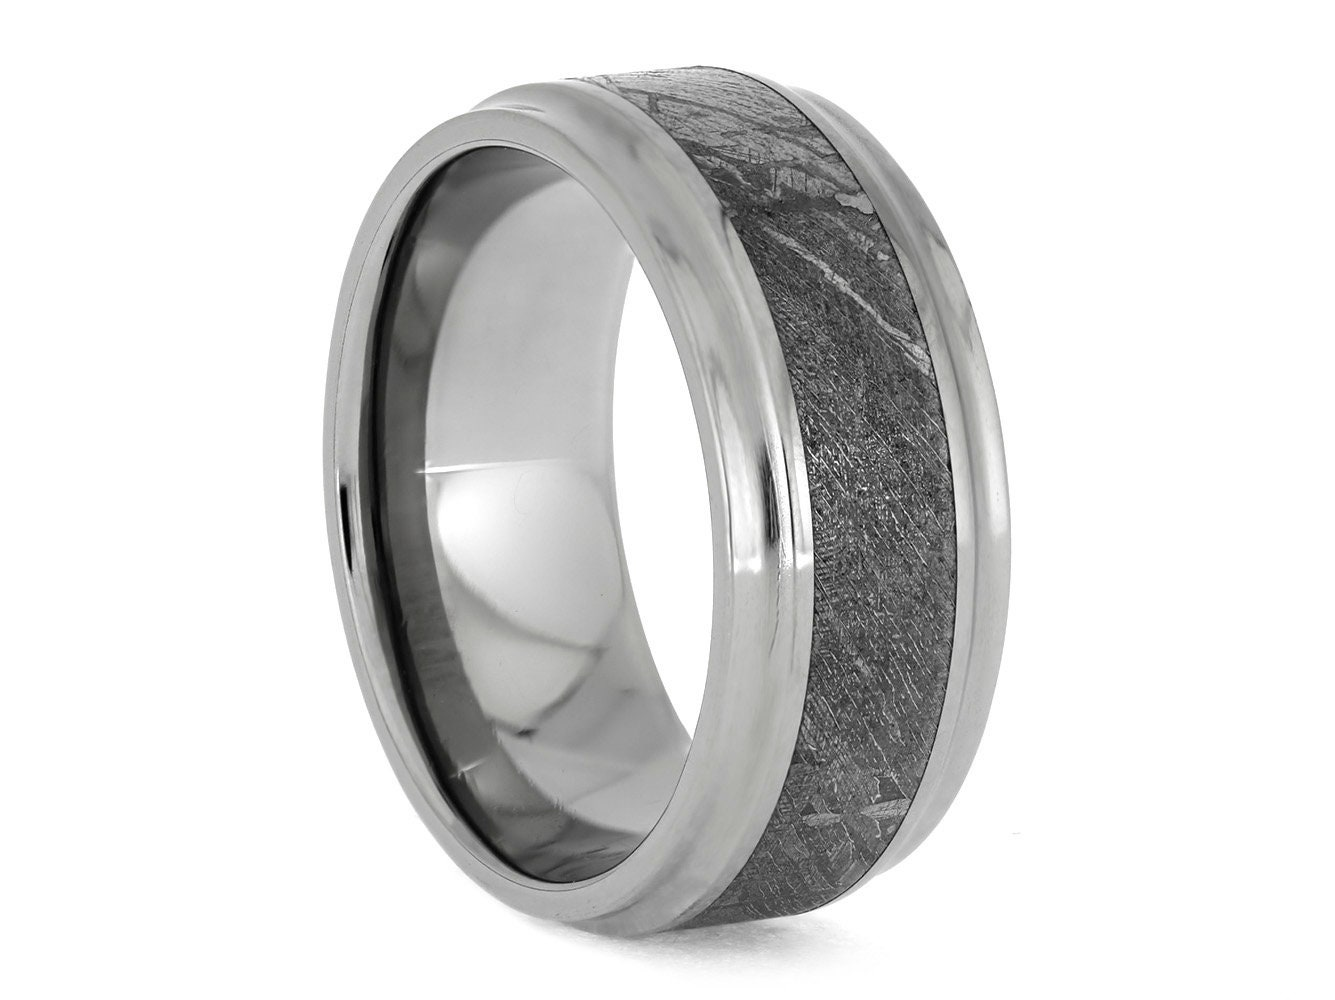 This is a graphic of Meteorite Wedding Band, Titanium Ring With Concave Edges